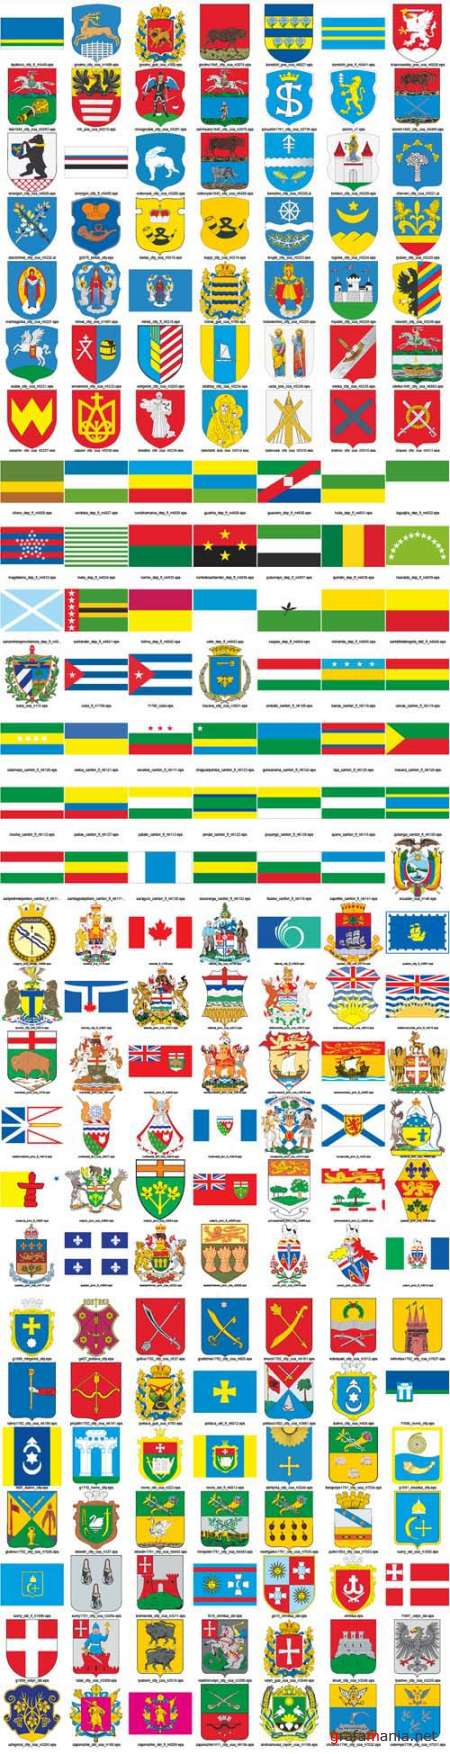 Flags and arms